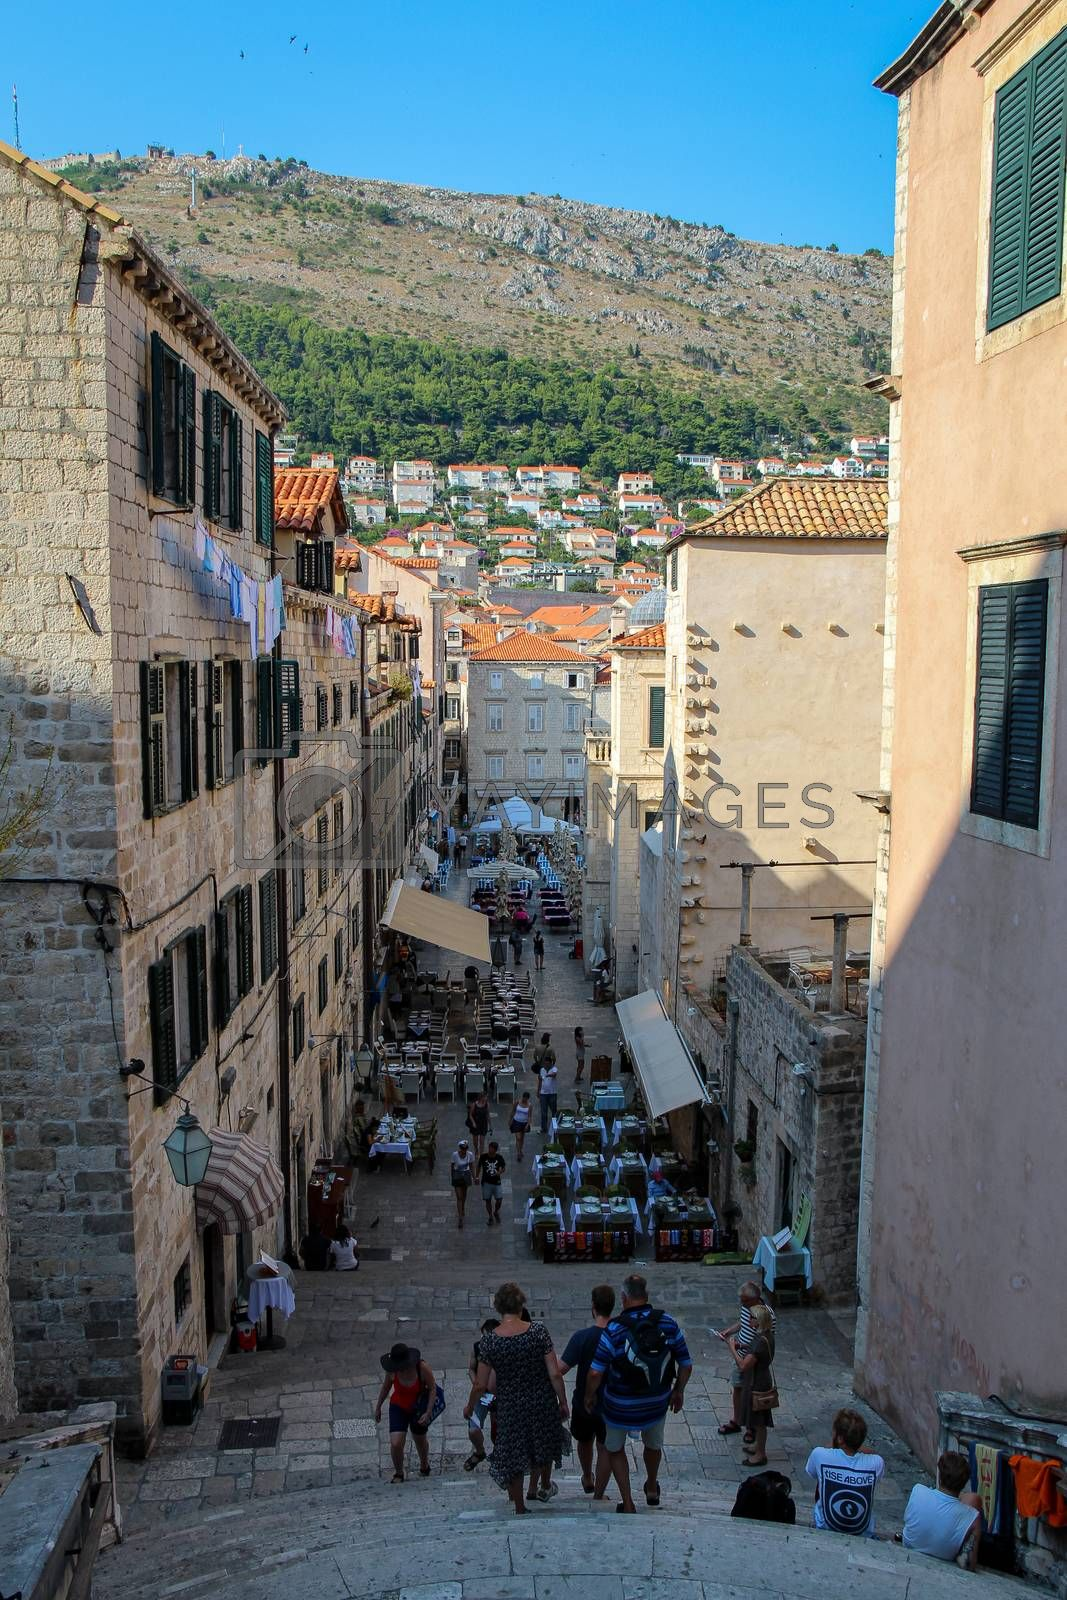 Dubrovnik, Croatia - July 15th 2018: A view down a street into the Square in Dubrovnik's old town from the town walls, Croatia